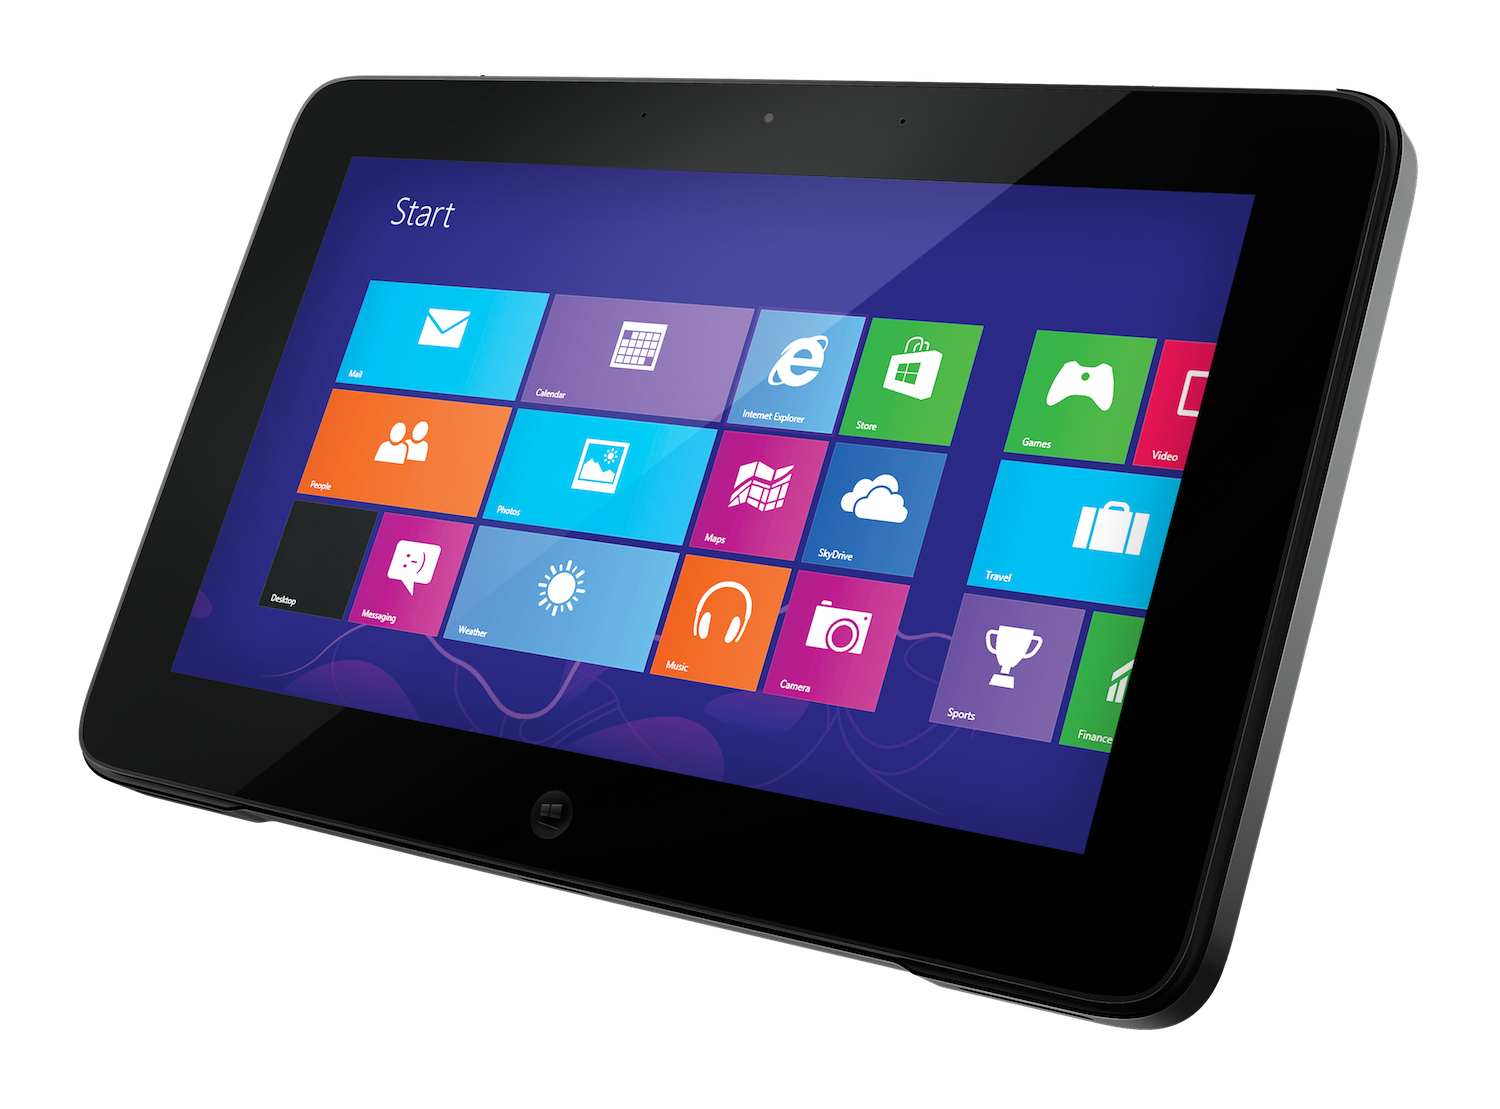 Tablet HD PNG - 117525